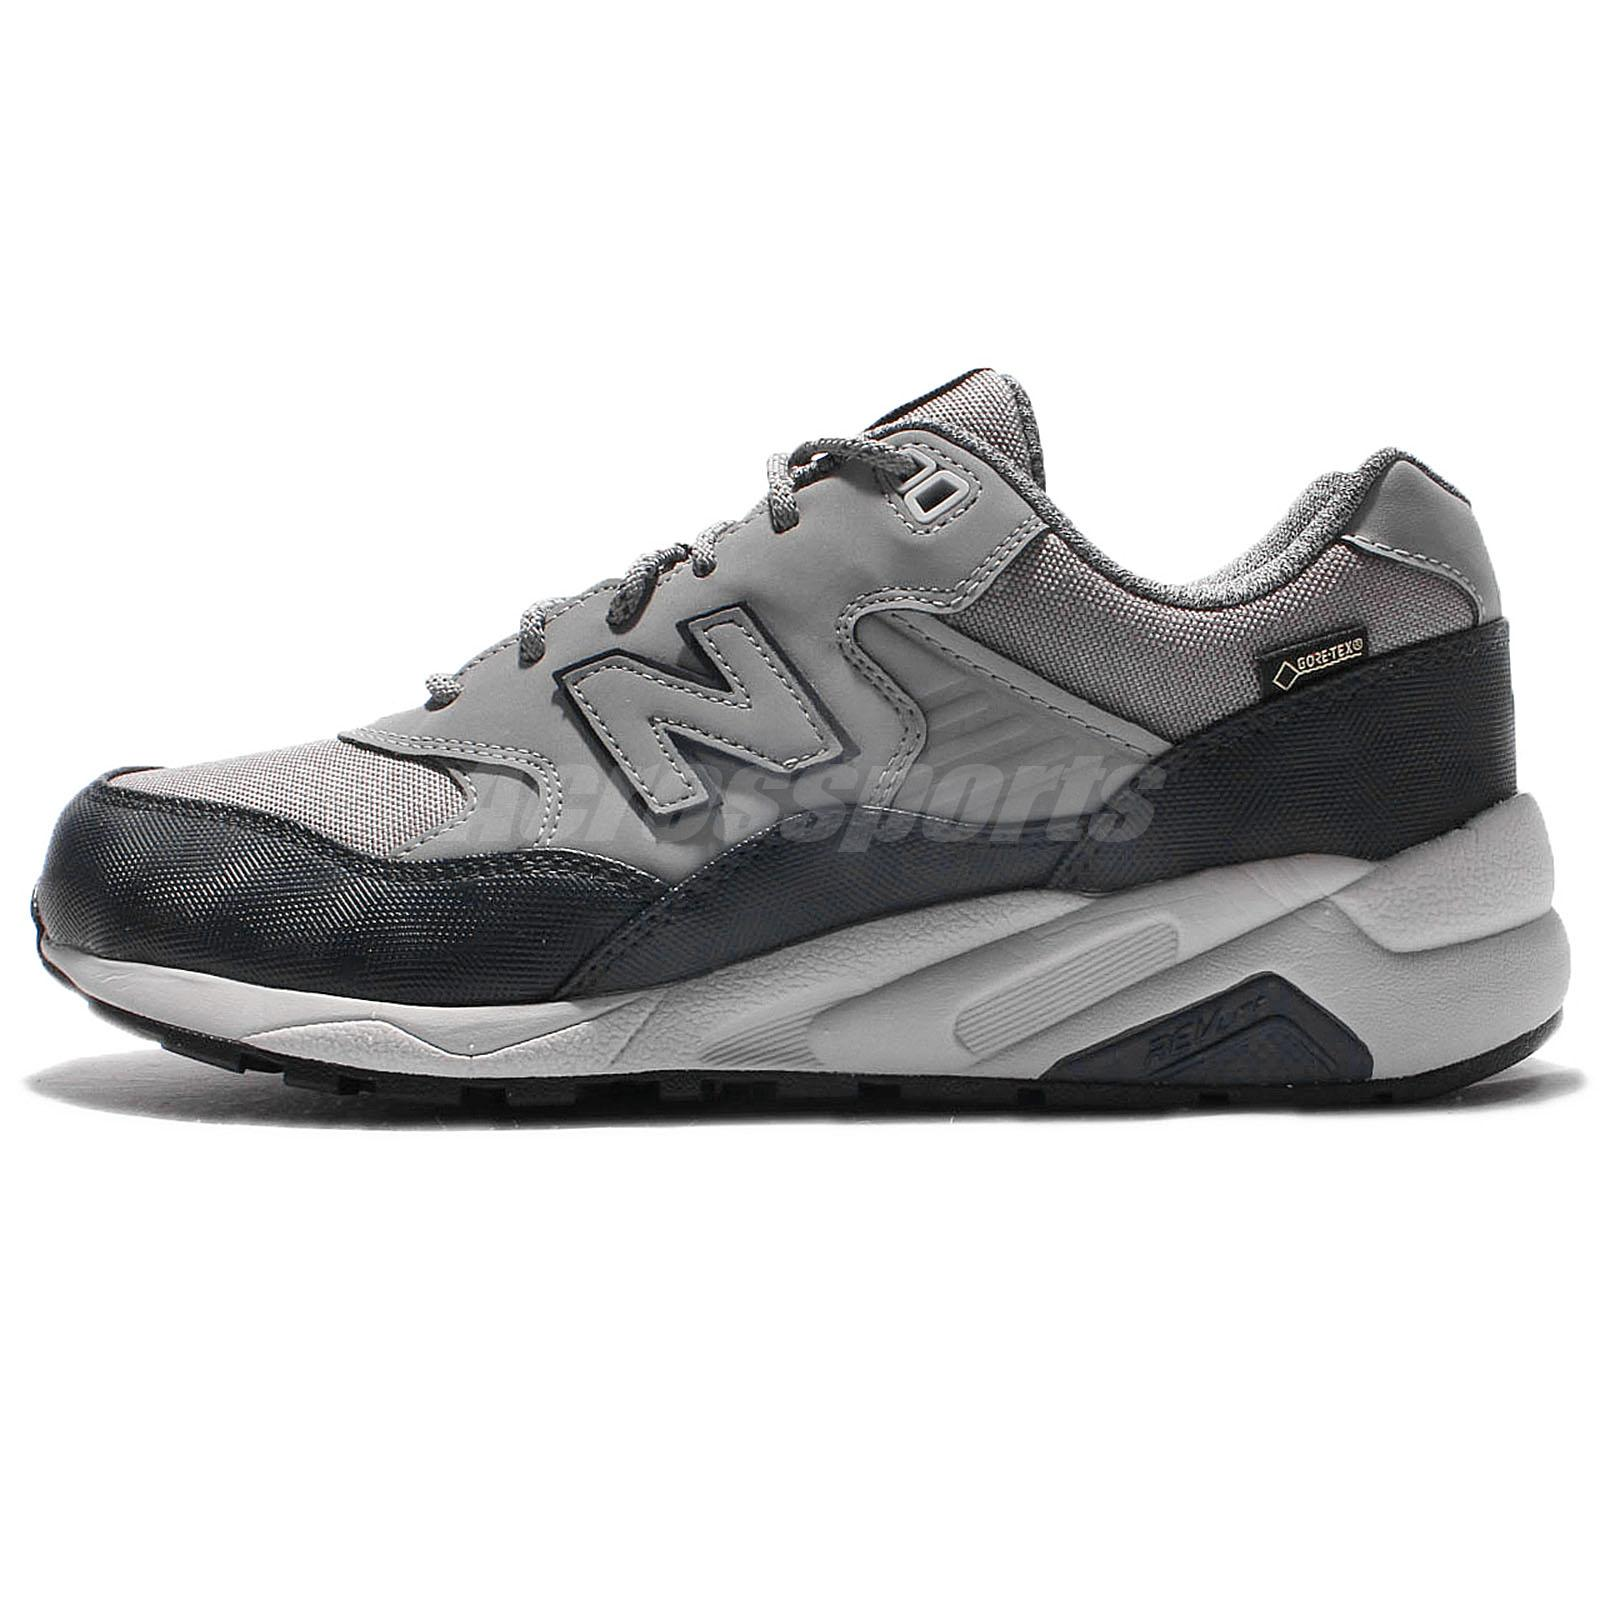 New Balance MRT580XF D Gore Tex Grey Navy Mens Running Shoes Sneakers MRT580 XFD